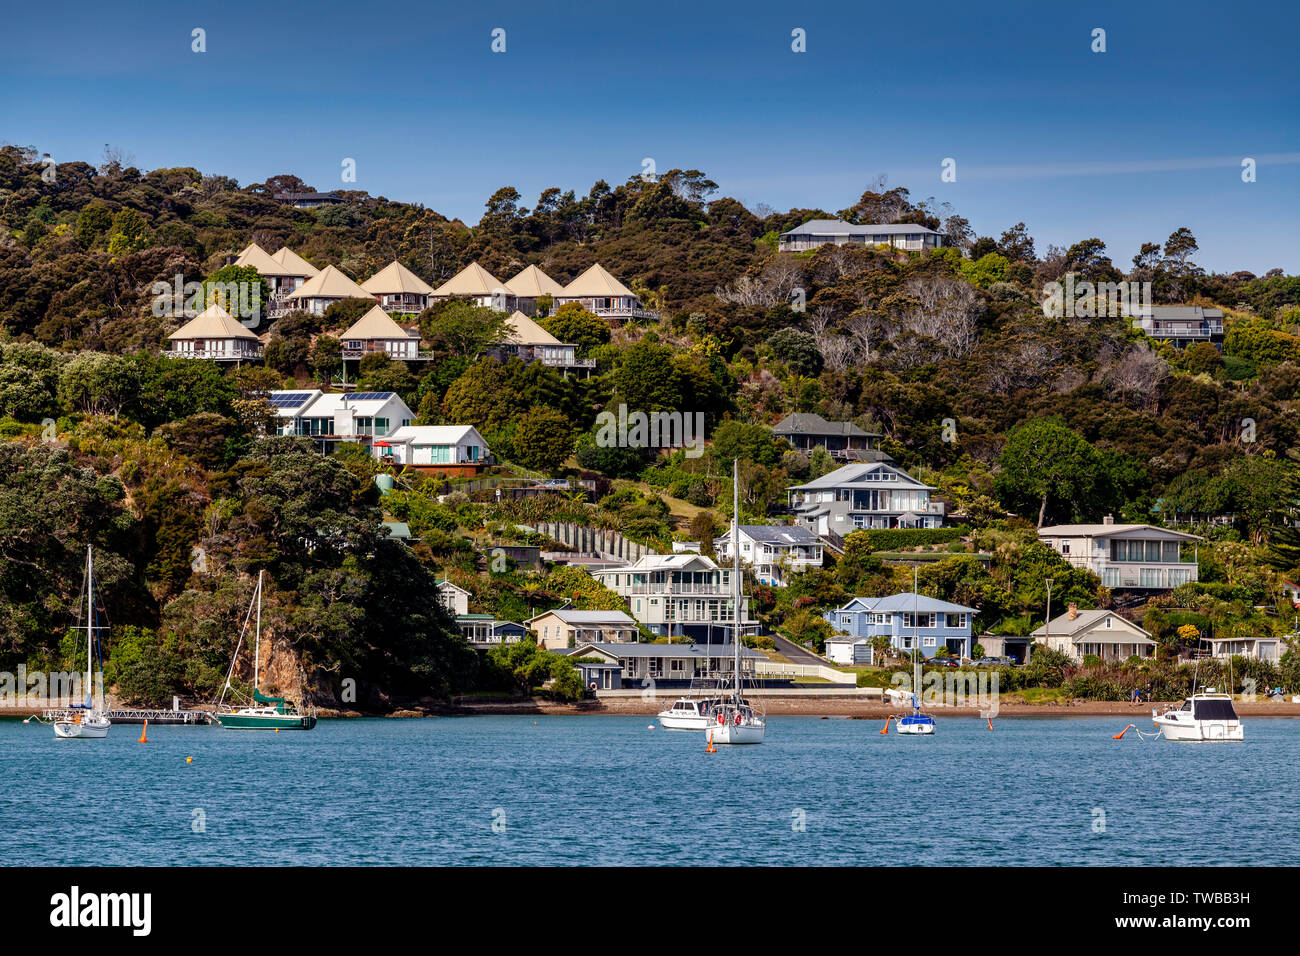 The Town Of Russell, The Bay Of Islands, North Island, New Zealand - Stock Image